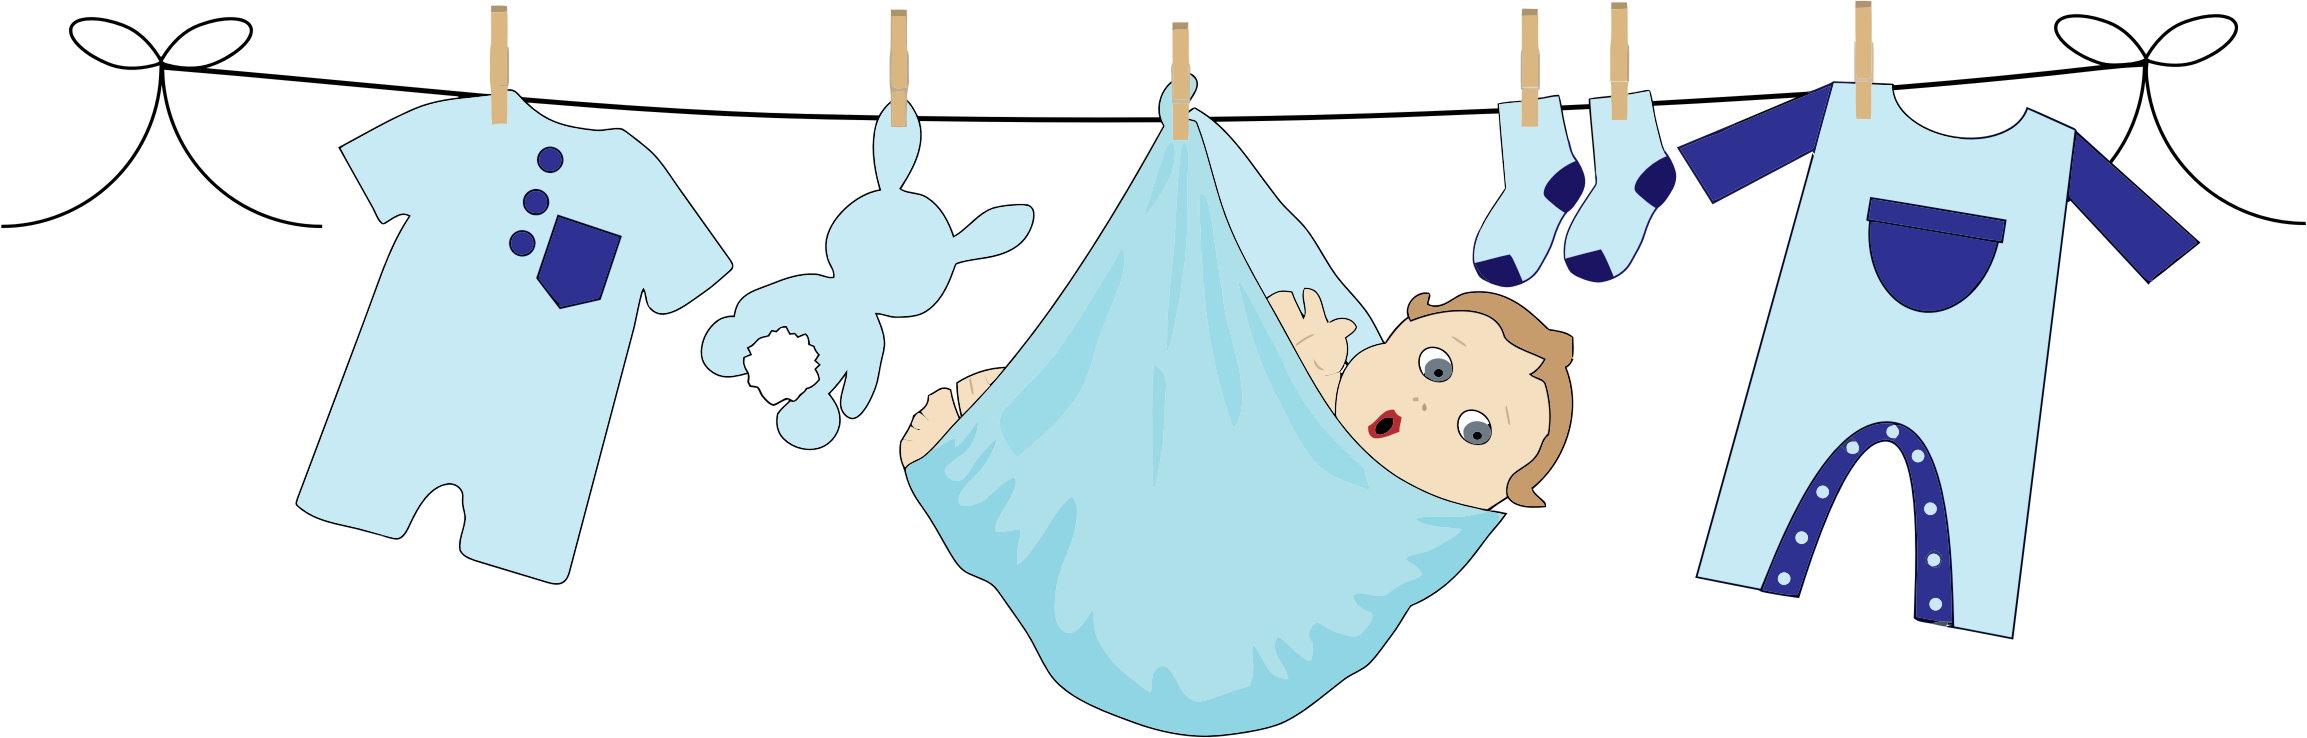 Baby Boy Hanging On A Clothesline by GDJ